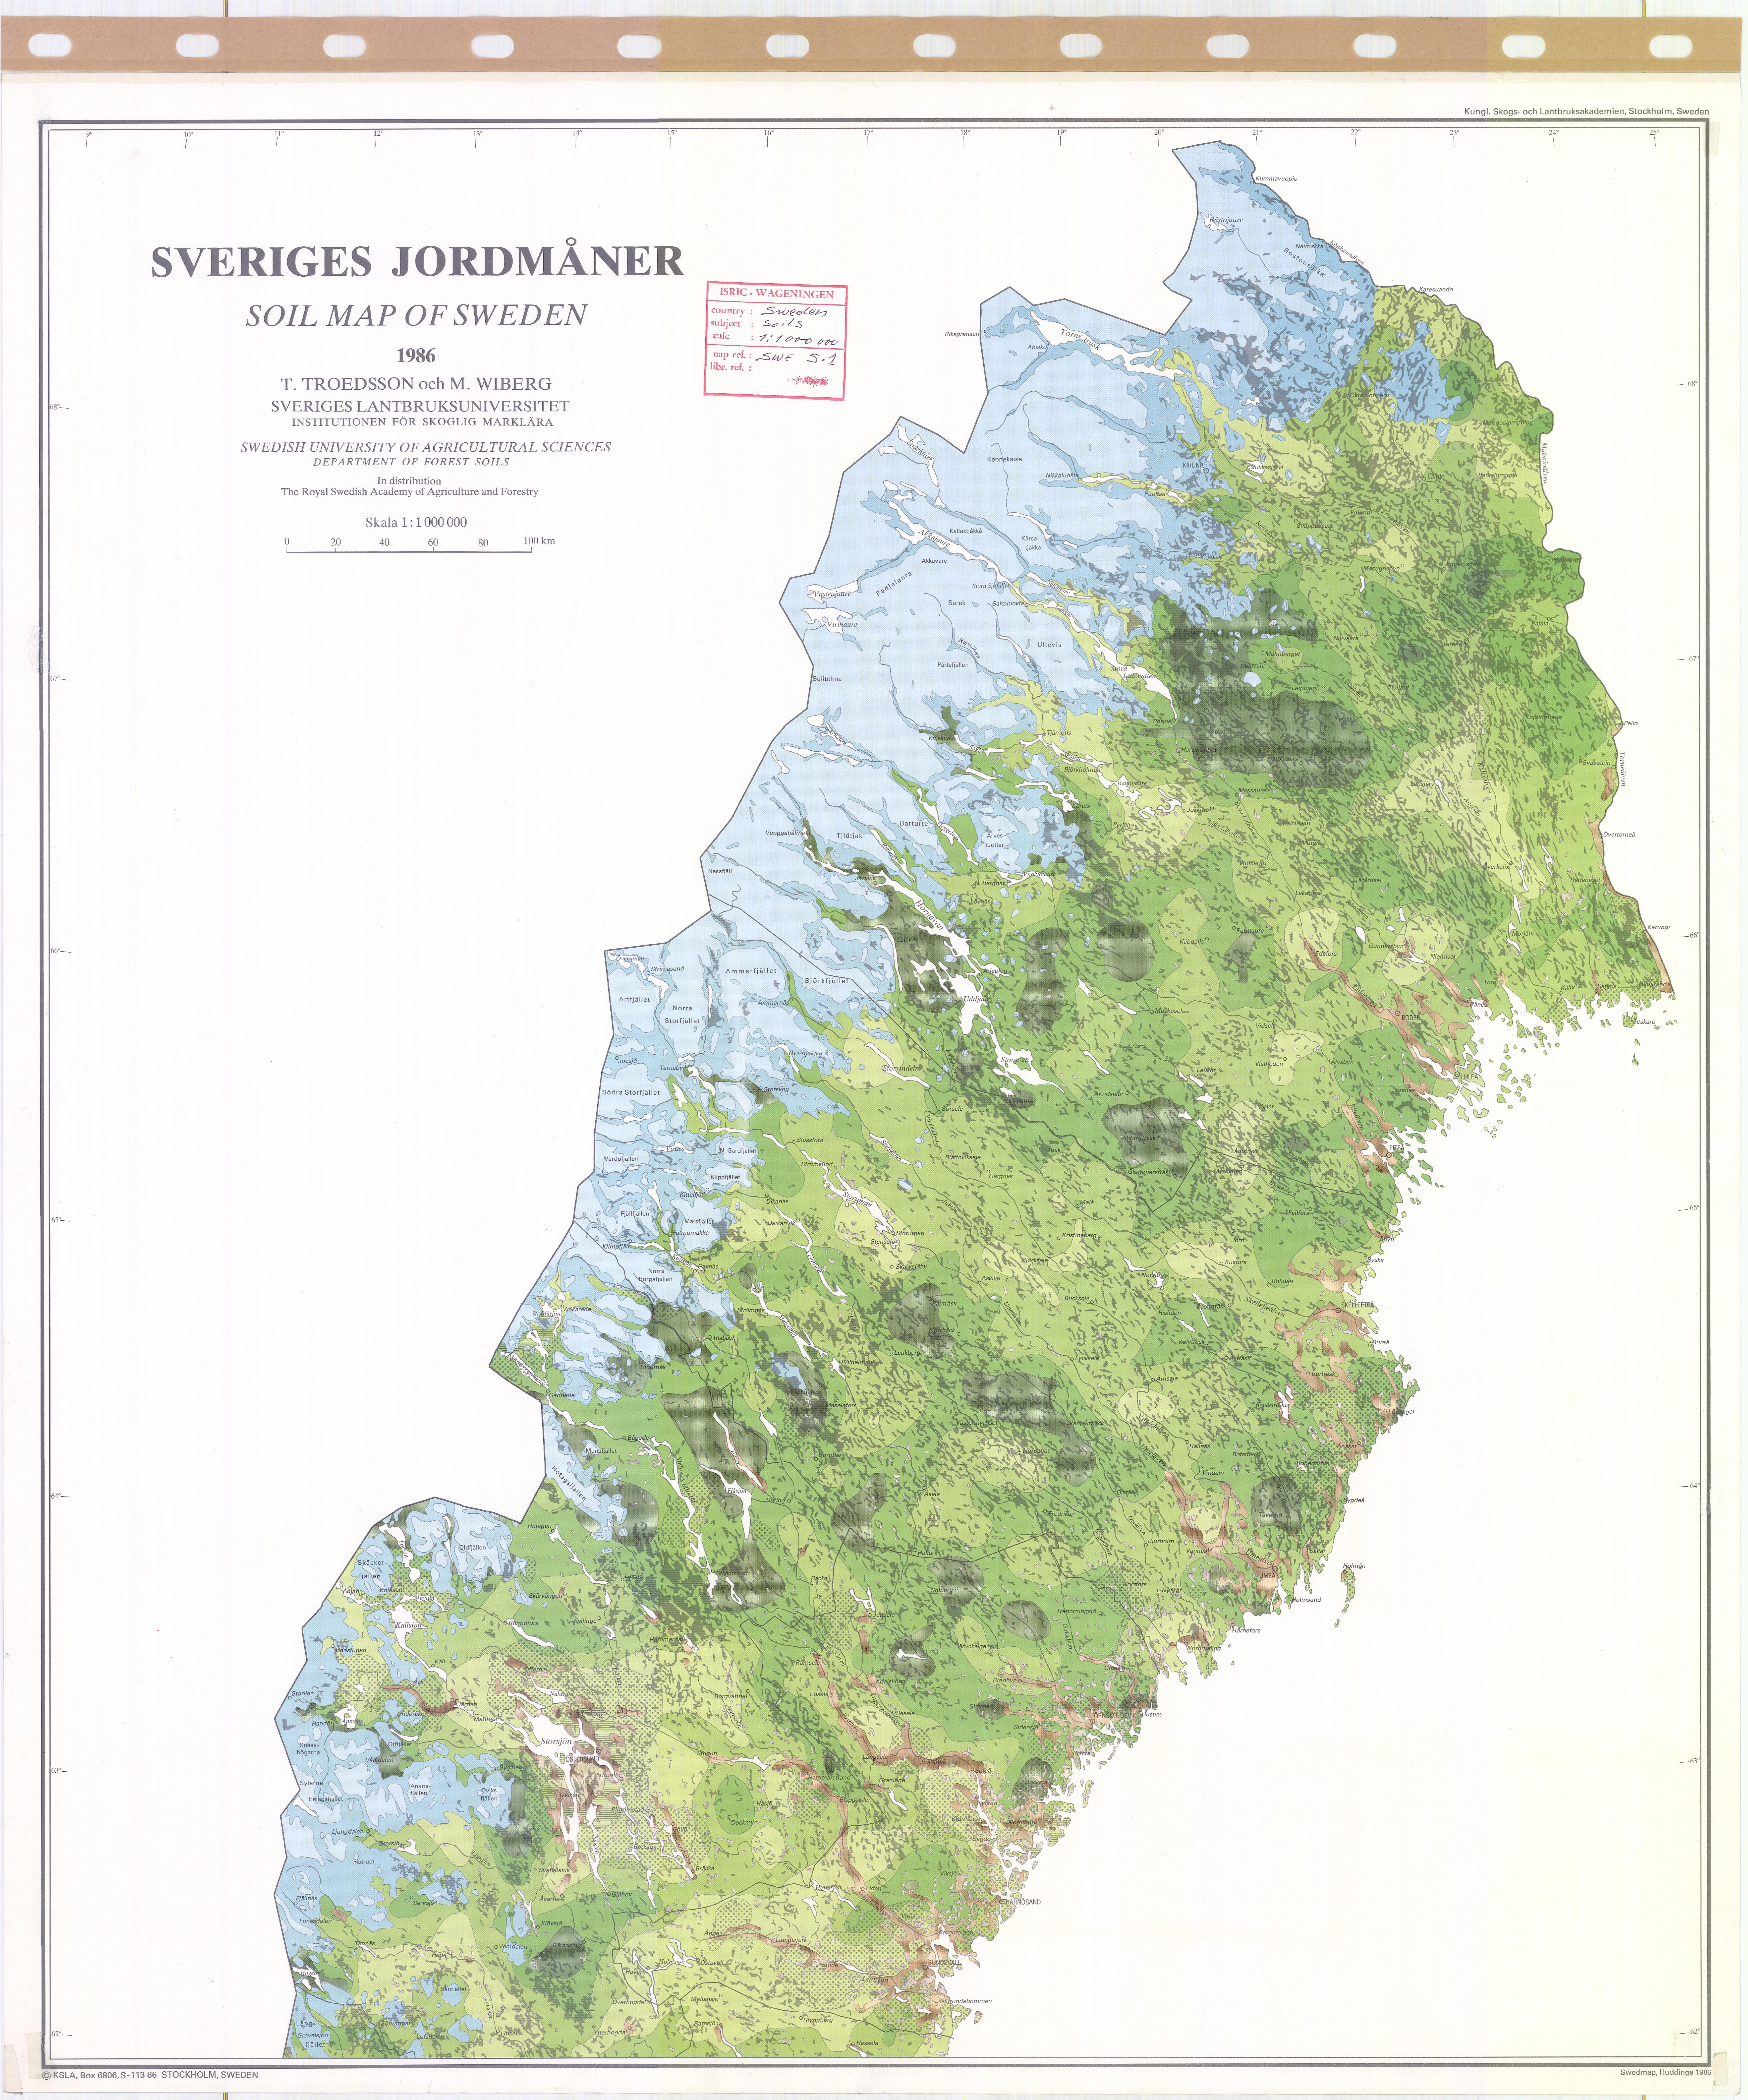 Soil Map Of Sweden Sheet ESDAC European Commission - Sweden forest map